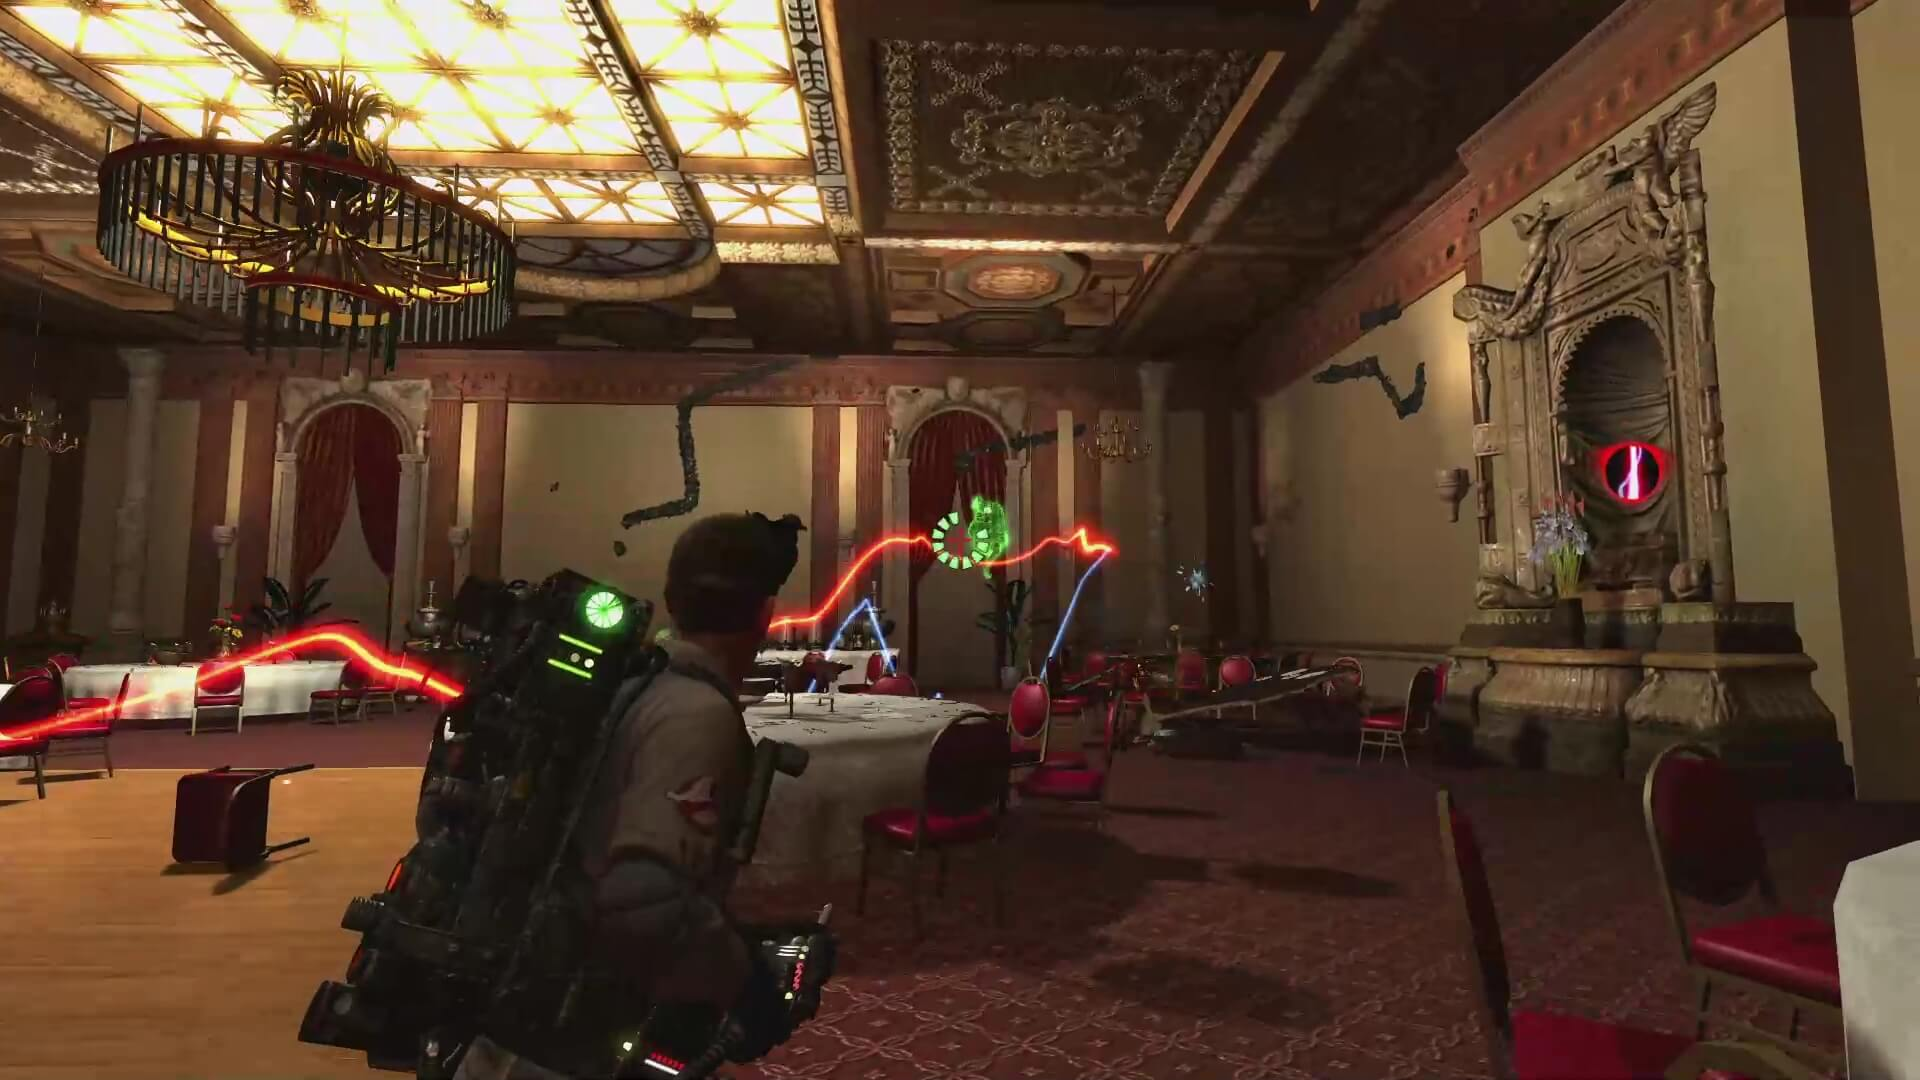 Ghostbusters The Video Game Remastered review